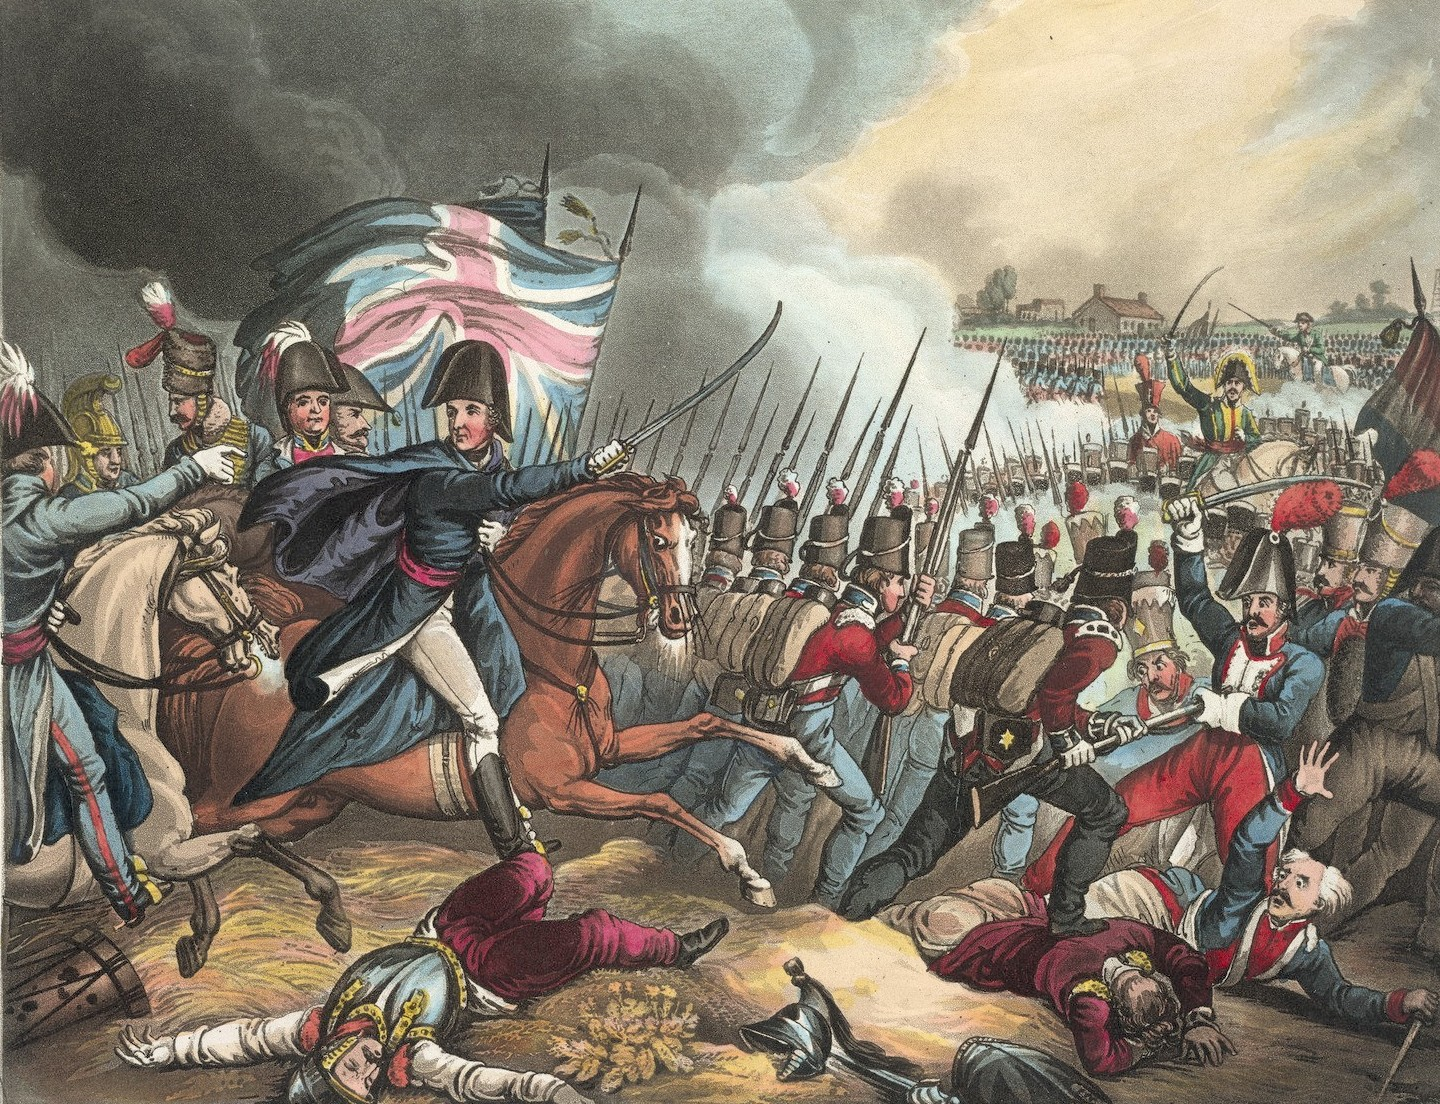 the battle of waterloo It might be 200 years since the battle of waterloo on thursday, but those nine hours of bloodshed on a field near the belgian town of waterloo changed the course of history.